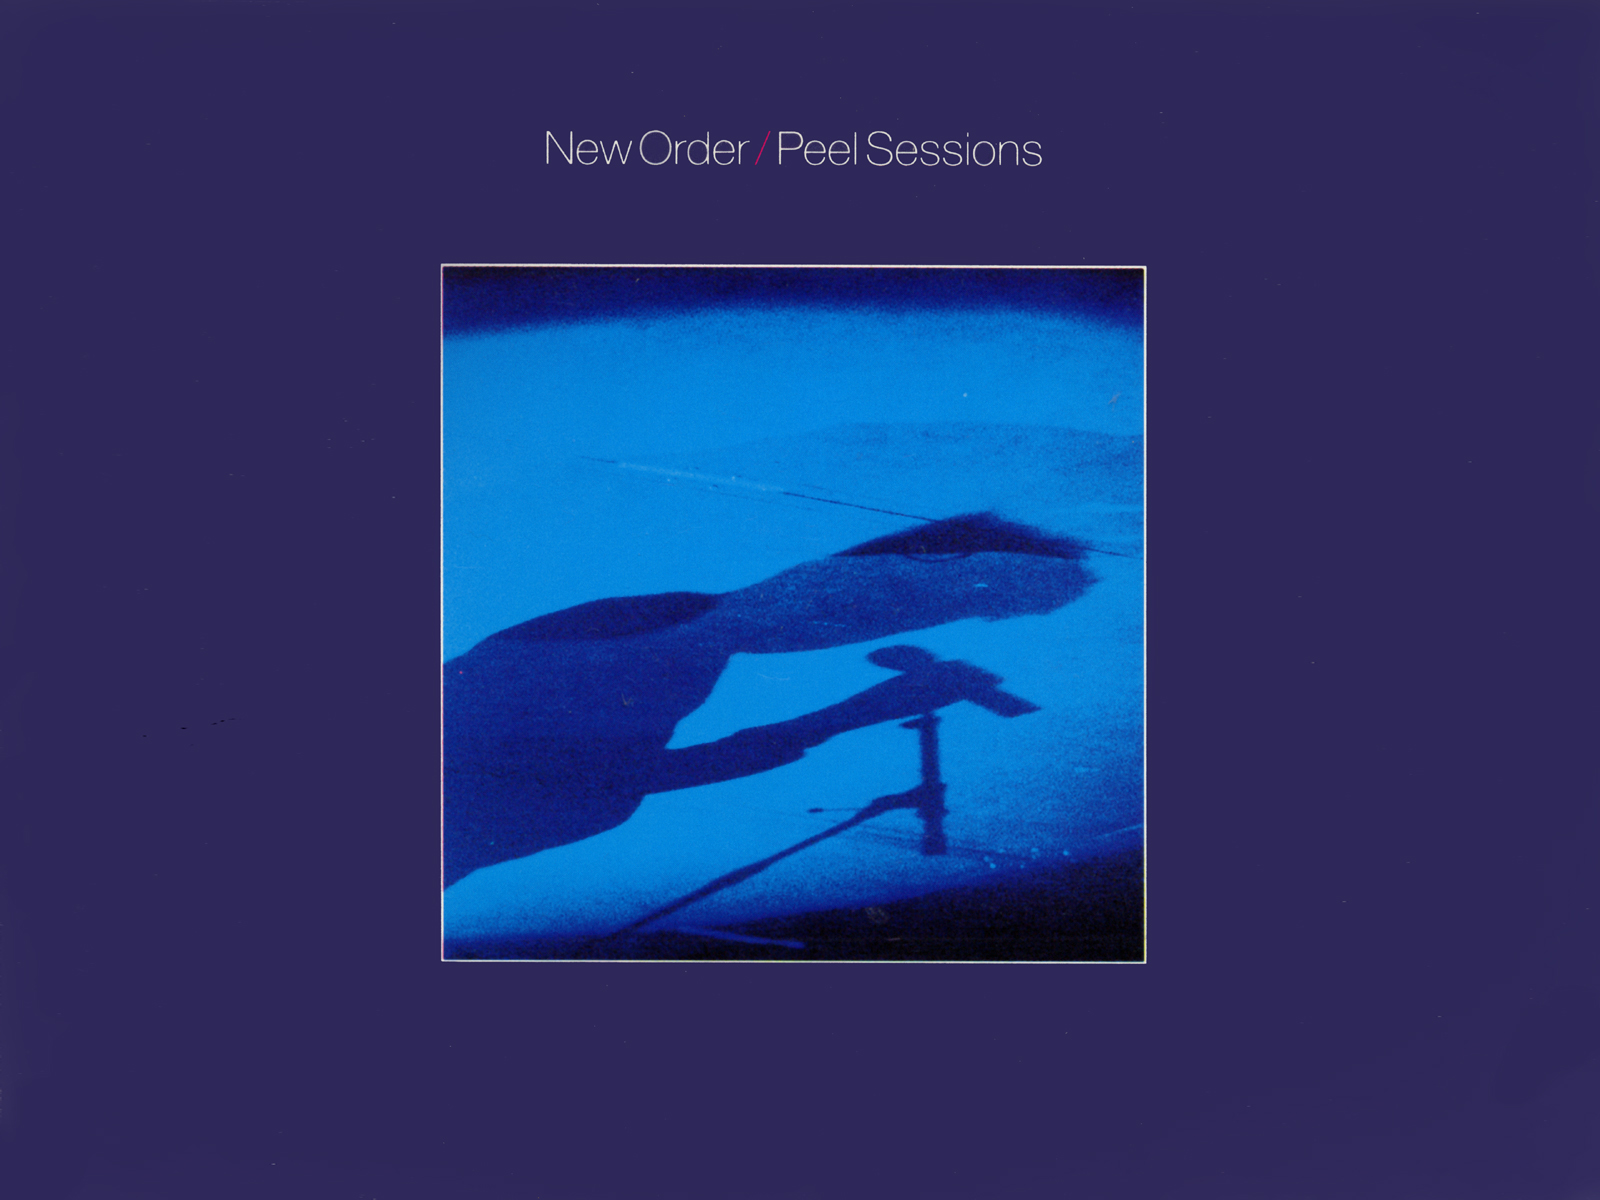 New Order Peel Sessions background wallpaper